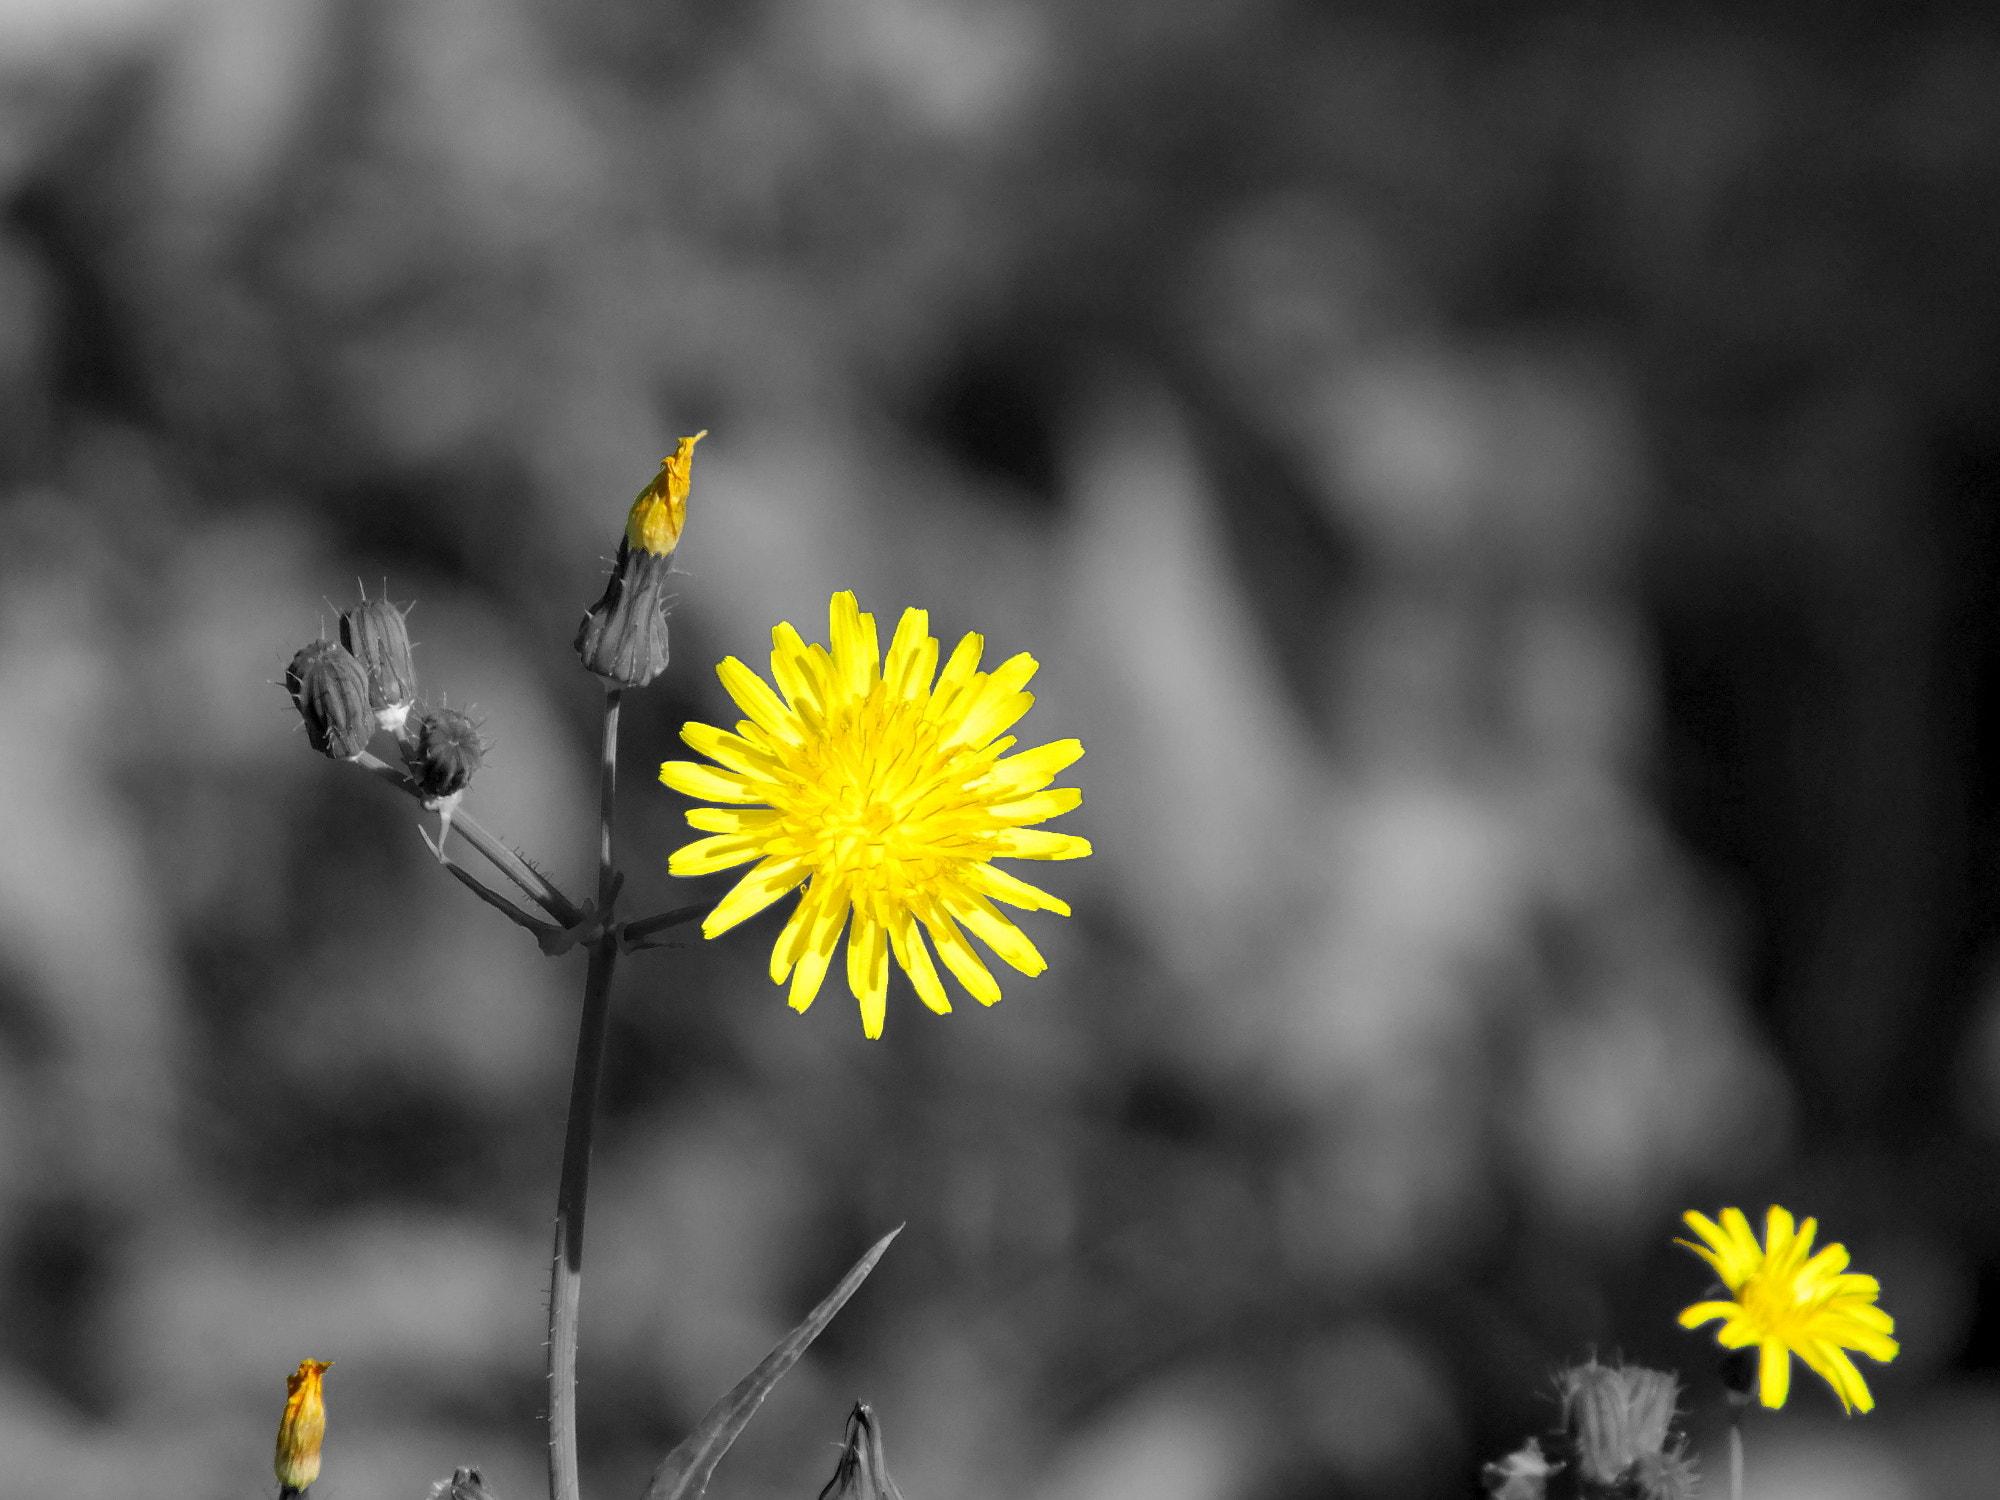 Photograph Yellow by Fabian Spiteri on 500px